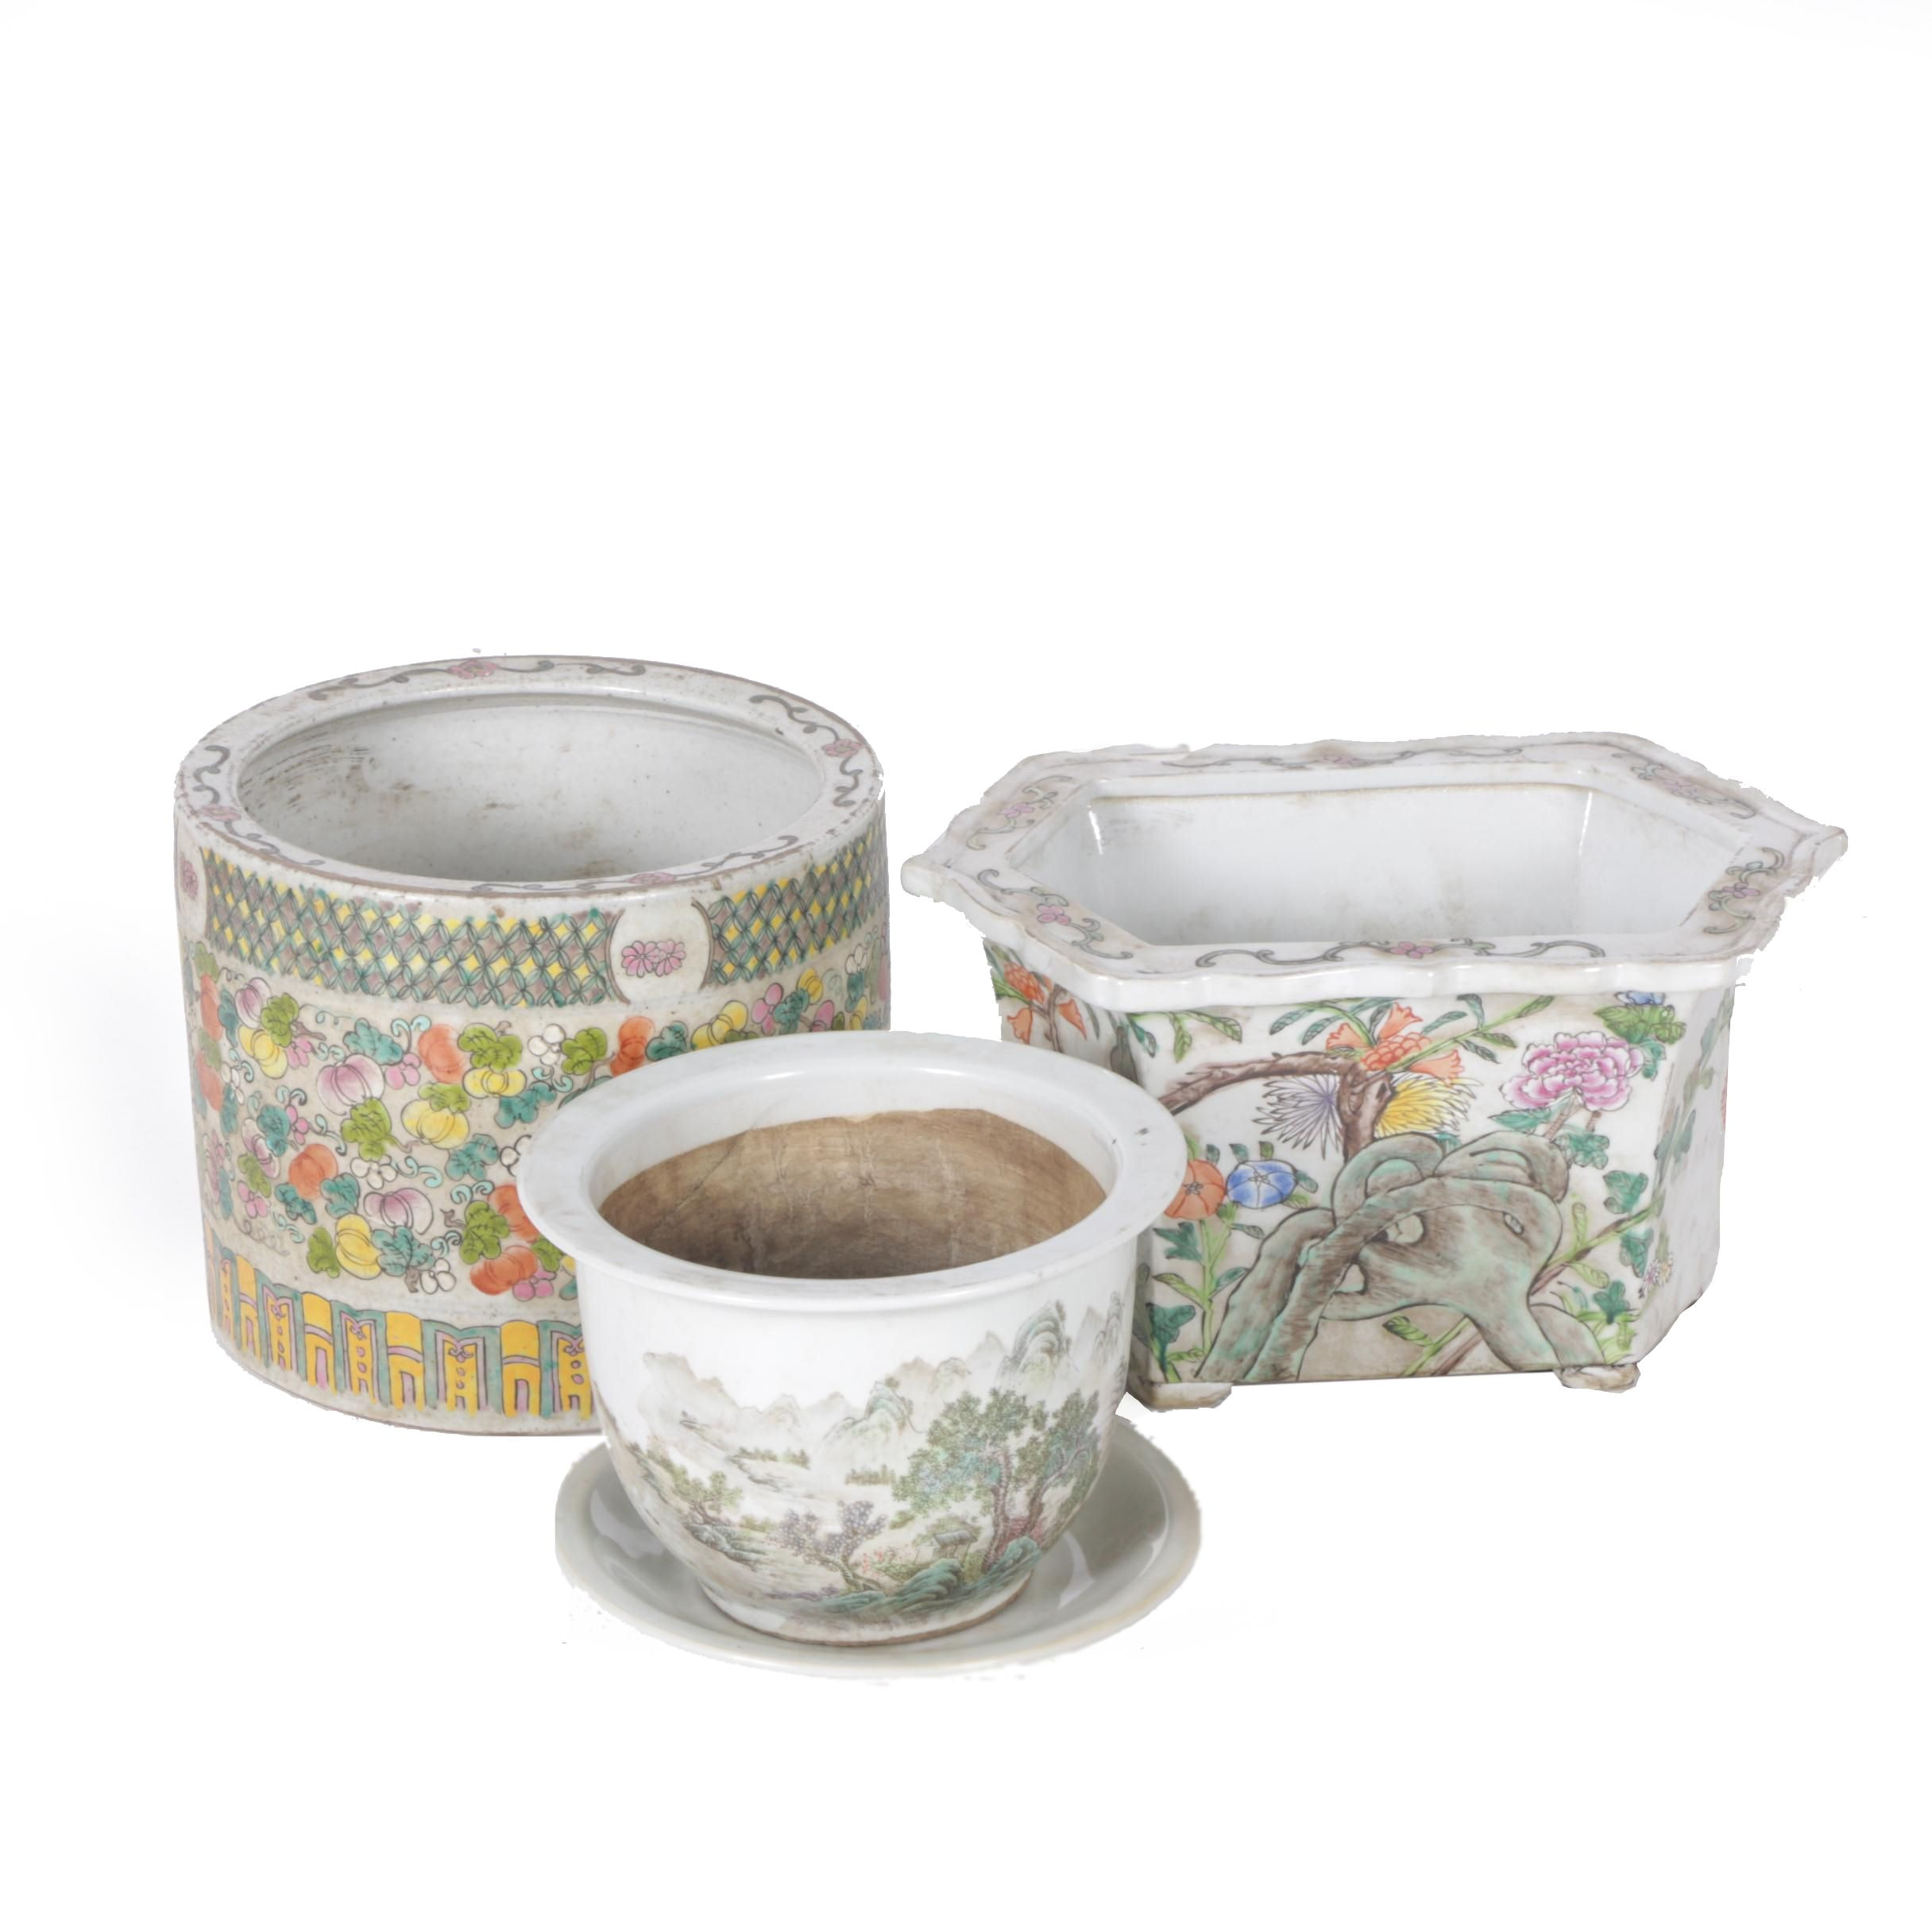 Chinese Floral and Landscape Motif Planters